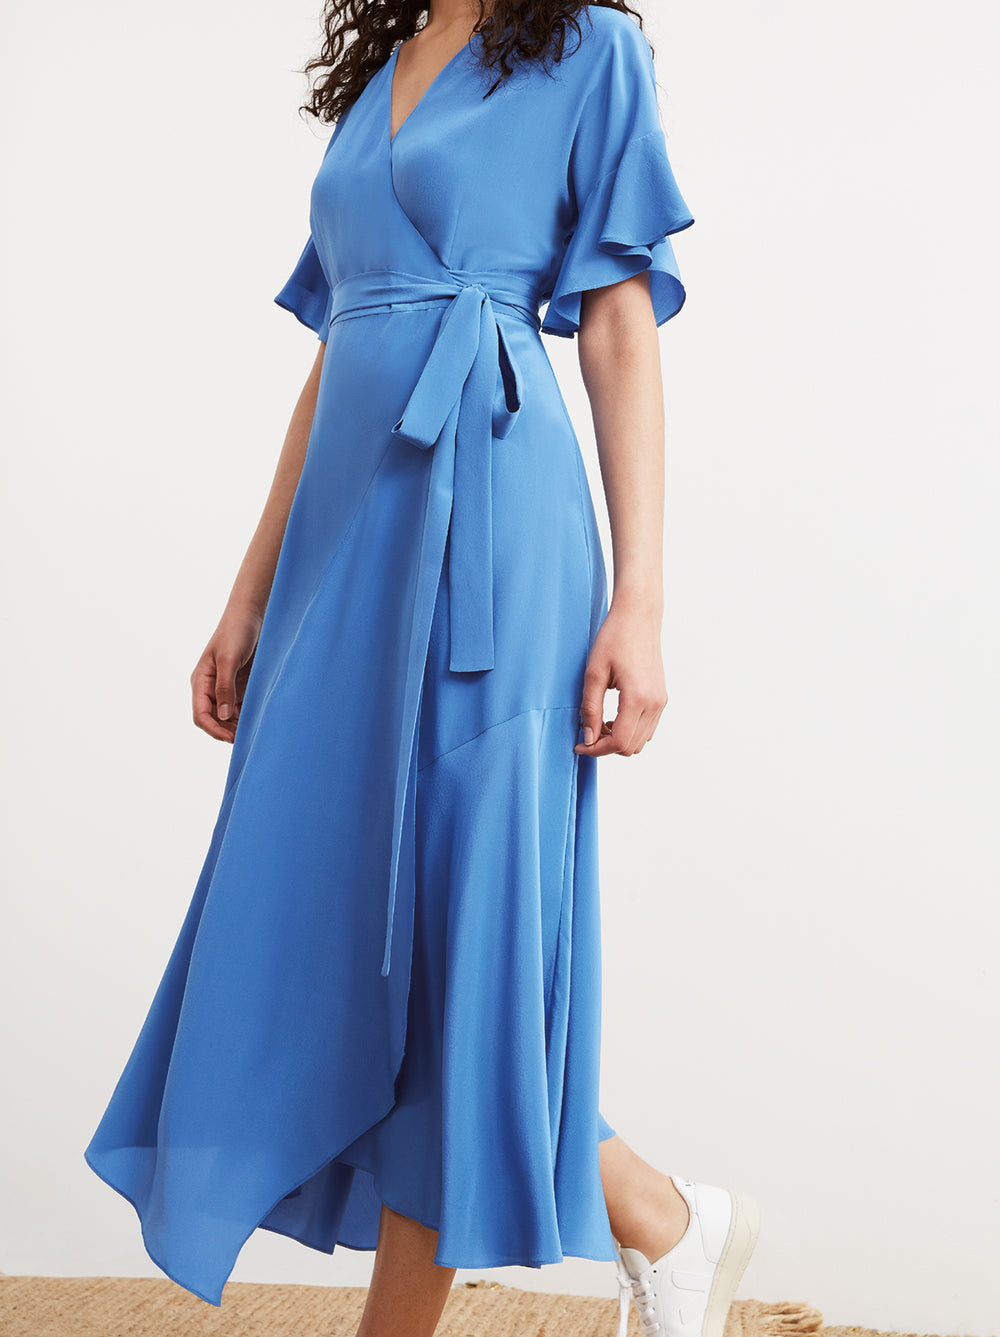 0e4031bb25c239 ... Eliana Blue Silk Wrap Dress by KITRI Studio